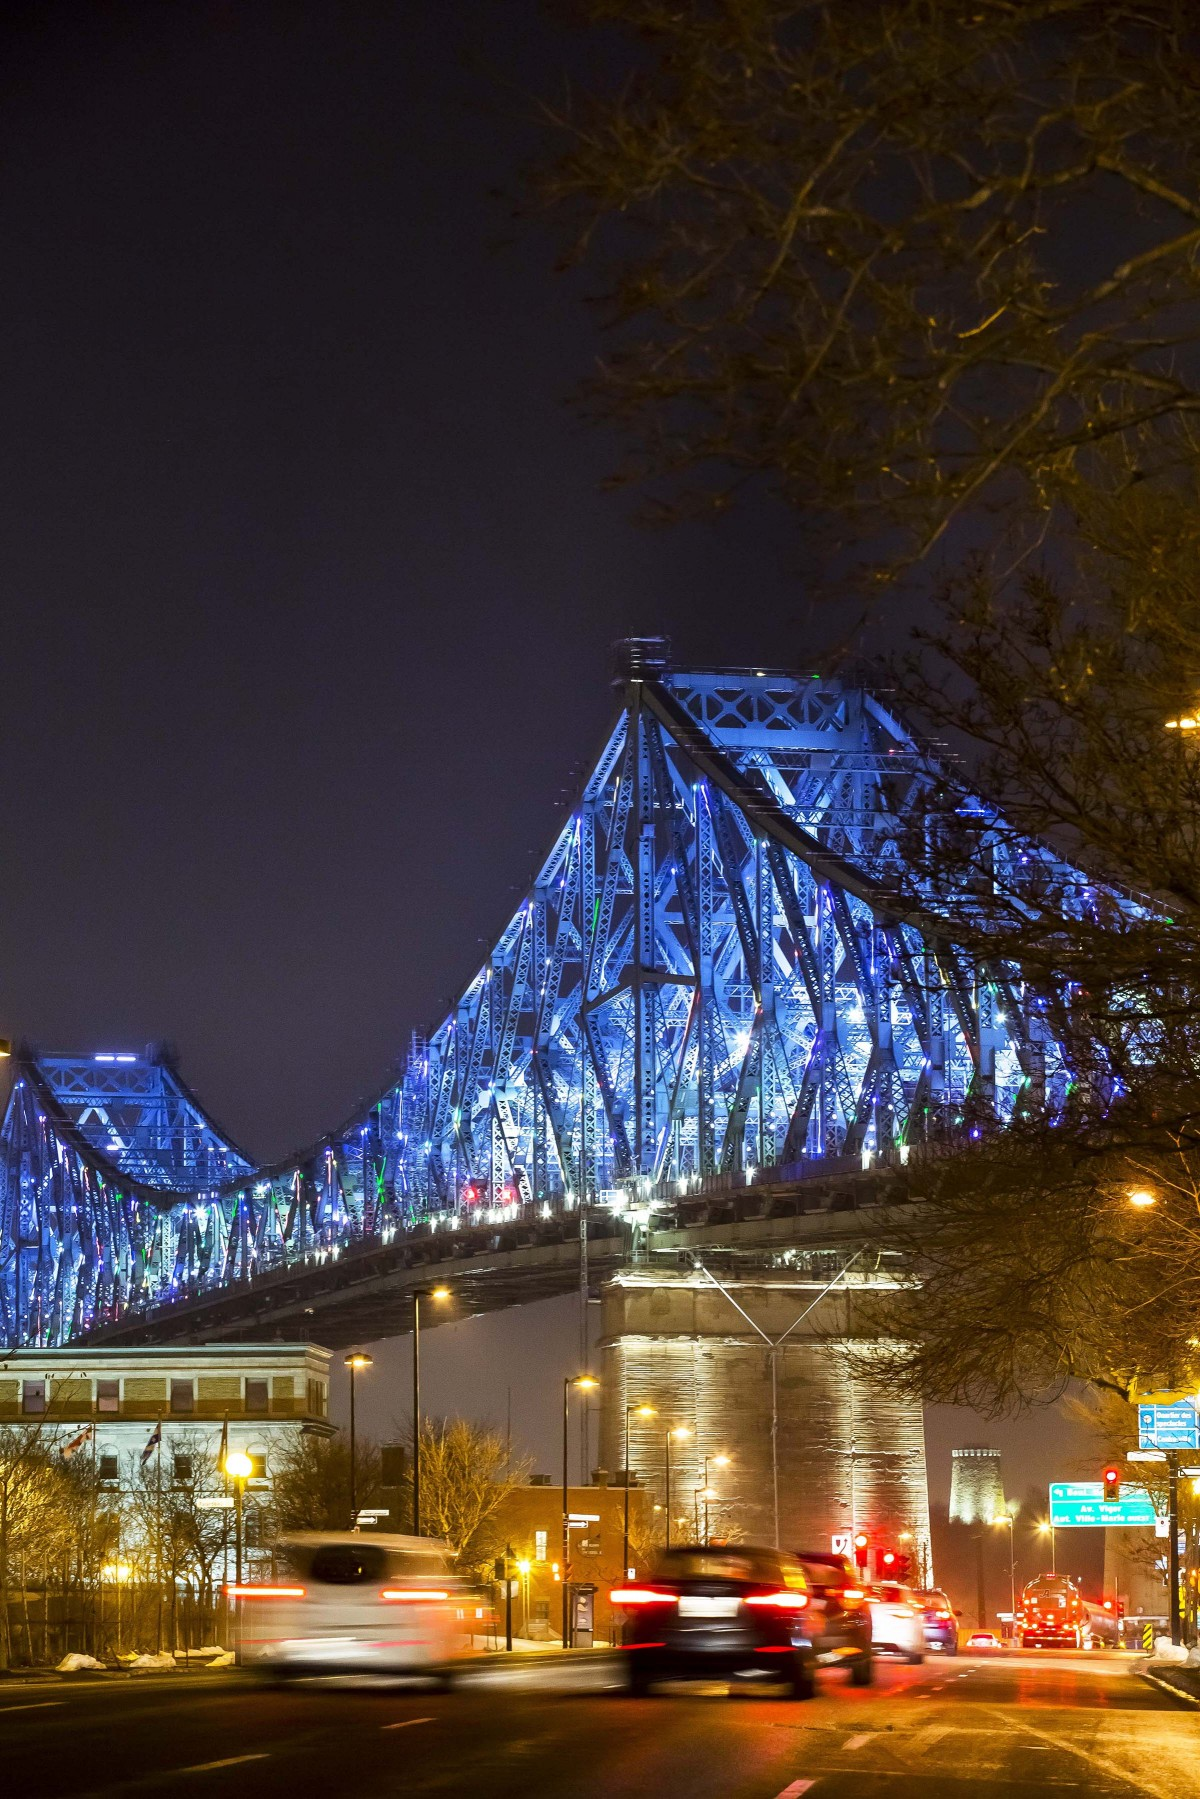 Le plus important était la conformité à la norme antivibrations 3G pour les ponts, et de savoir avec confiance que les produits pourraient résister à la vibration constante du trafic. – The Jacques Cartier and Champlain Bridges Incorporated